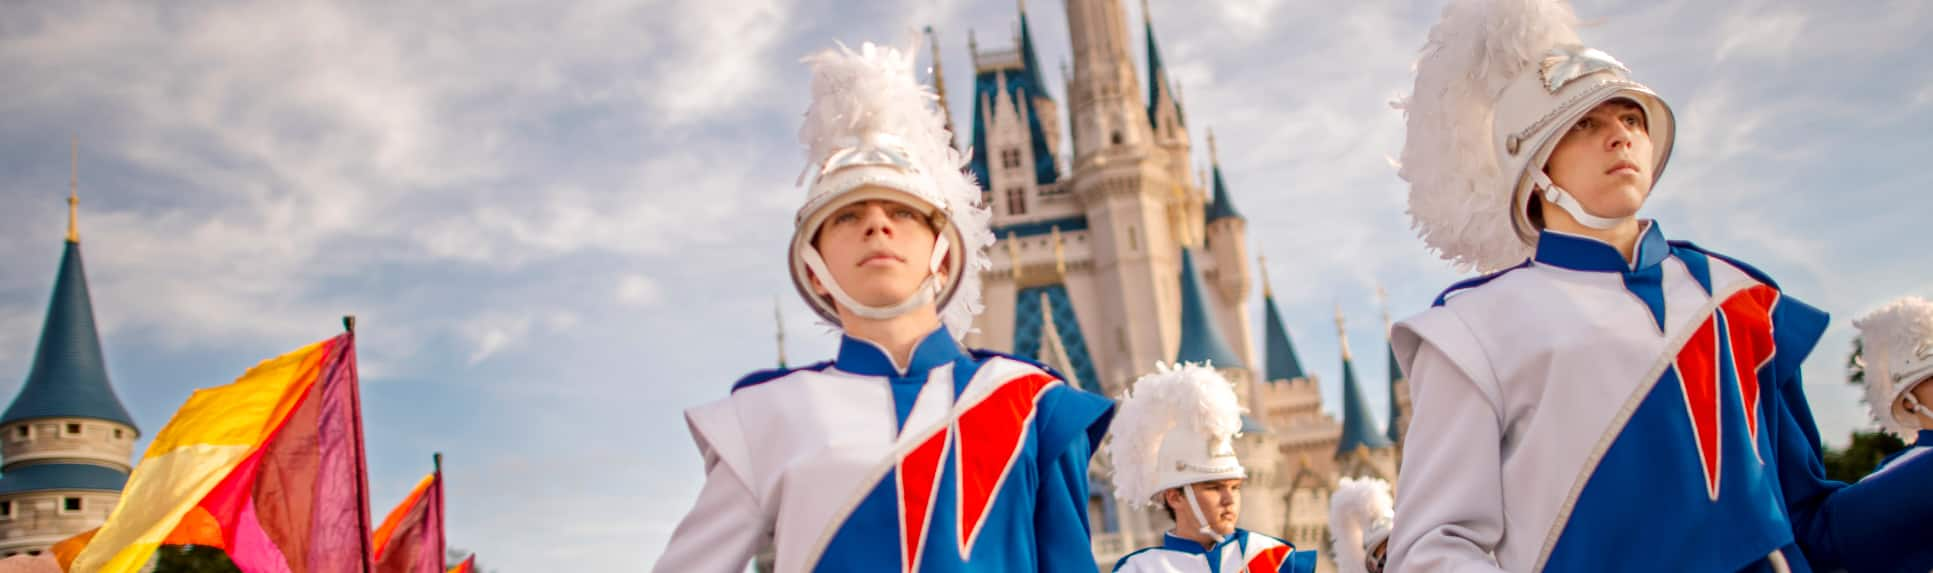 Flag wavers and drummers march in a parade near Cinderella Castle